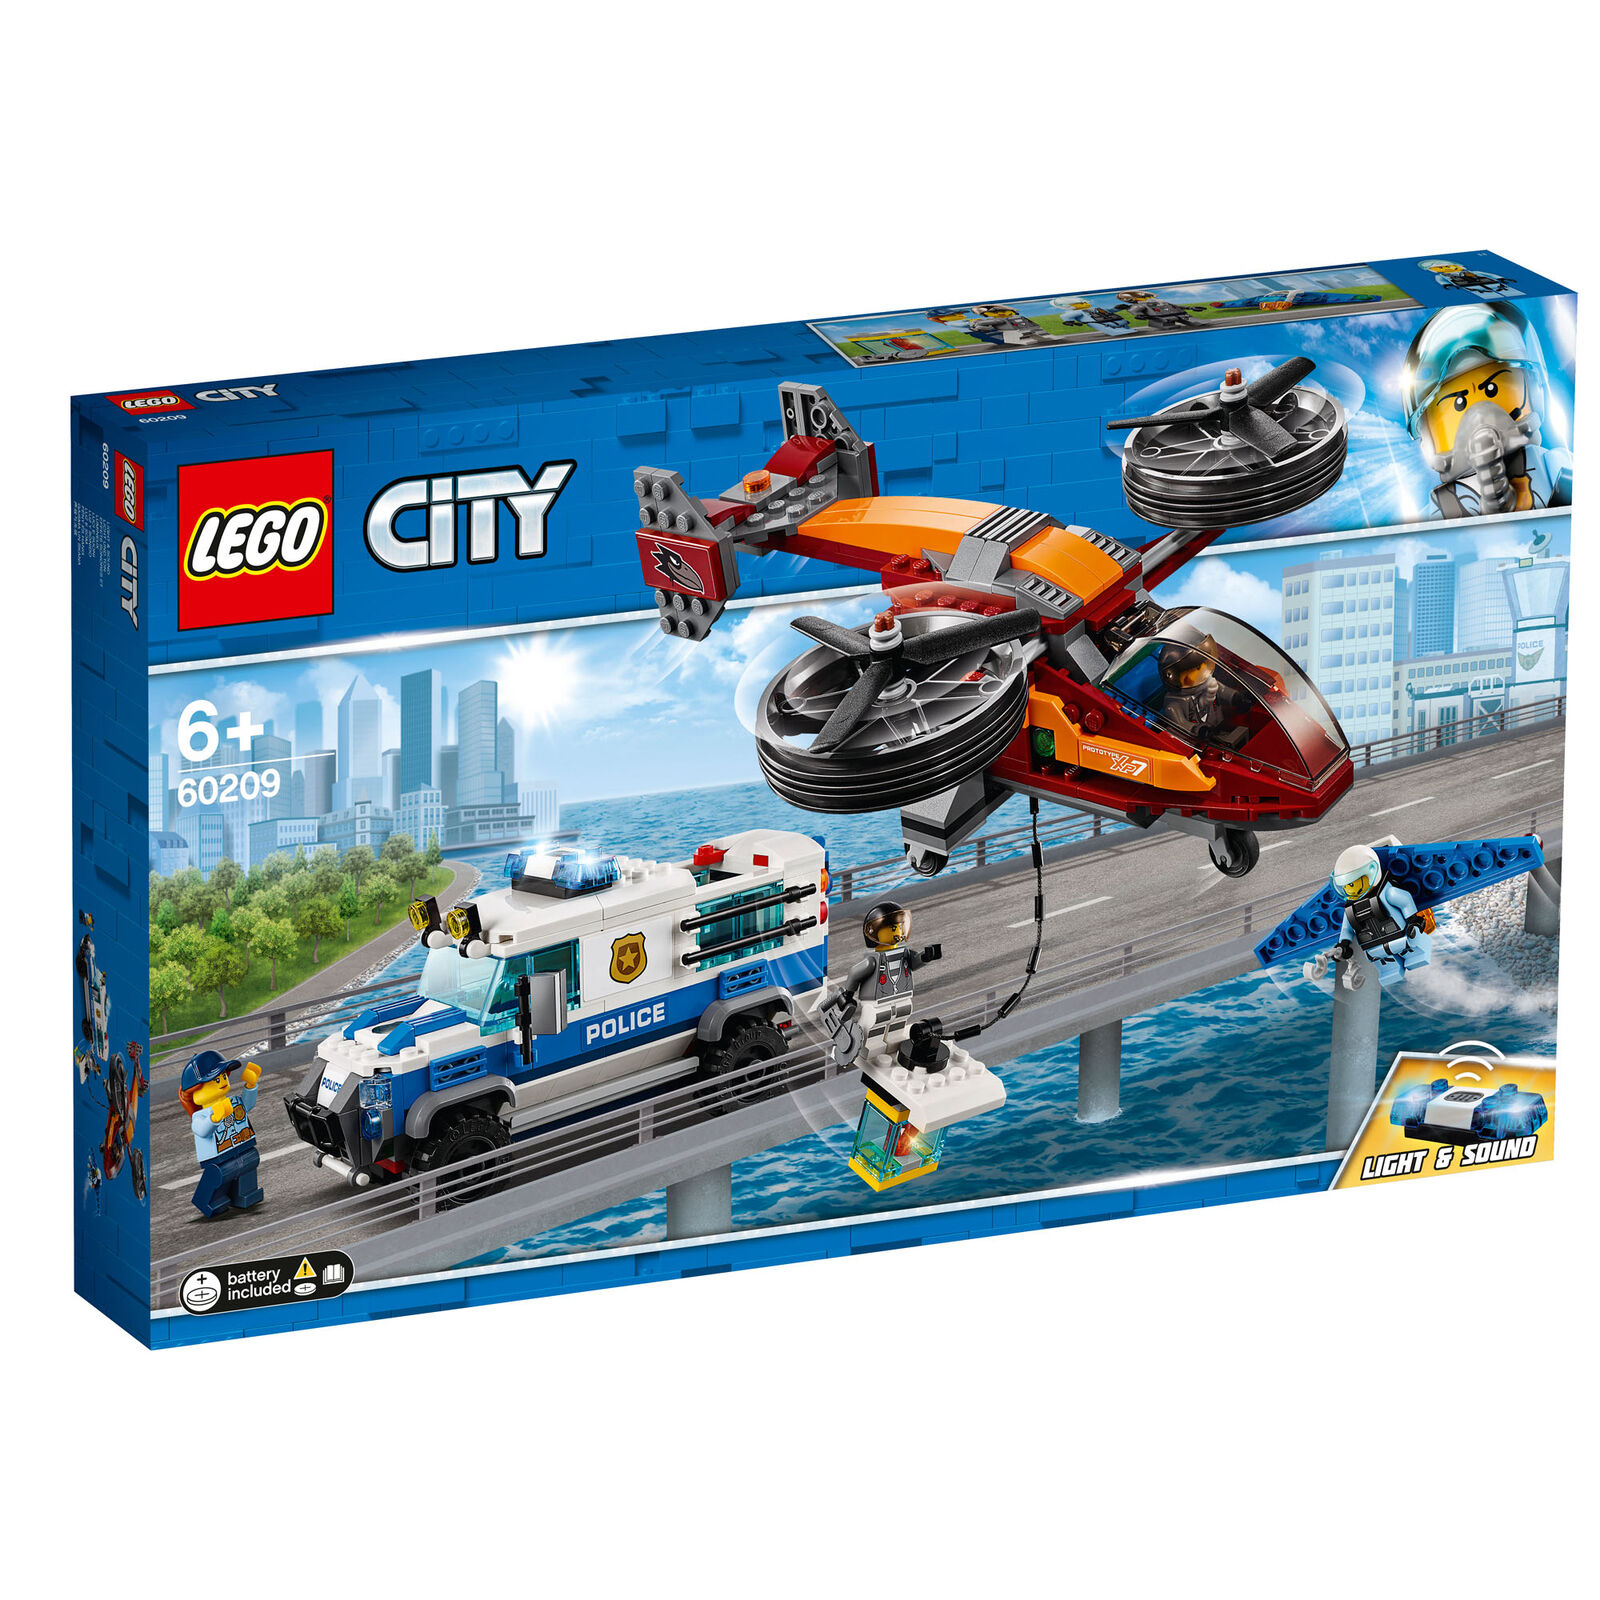 60209 LEGO City Sky police Diamond Heist 400 pieces 6 ans nouvelle version pour 2019